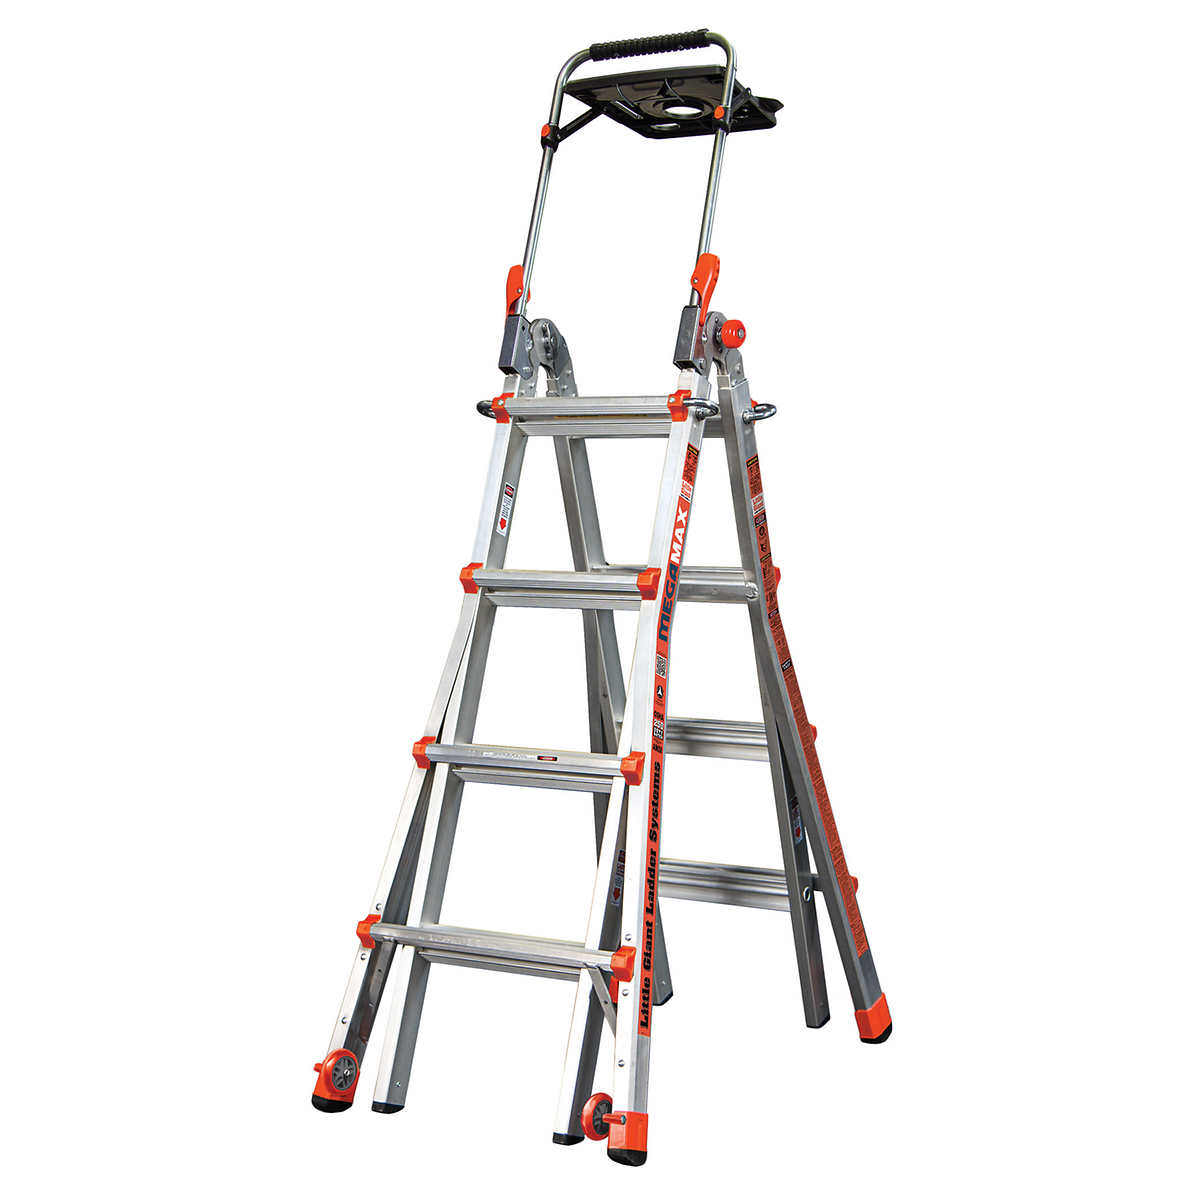 Little Giant MegaMax 17 Ladder w/Air Deck Extend to 15 ft